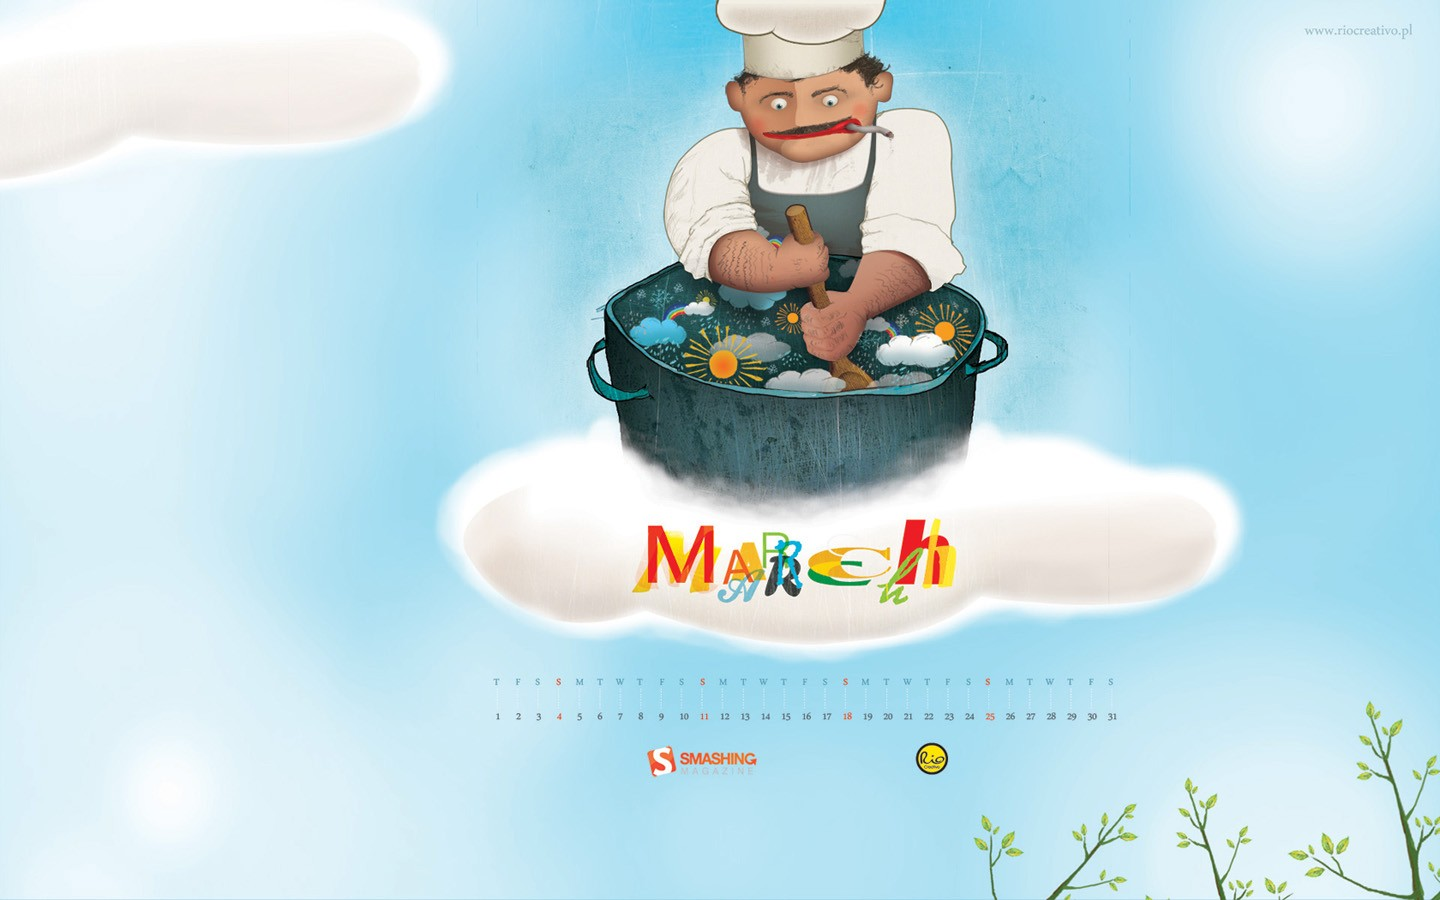 March Calendar illustrator 31390